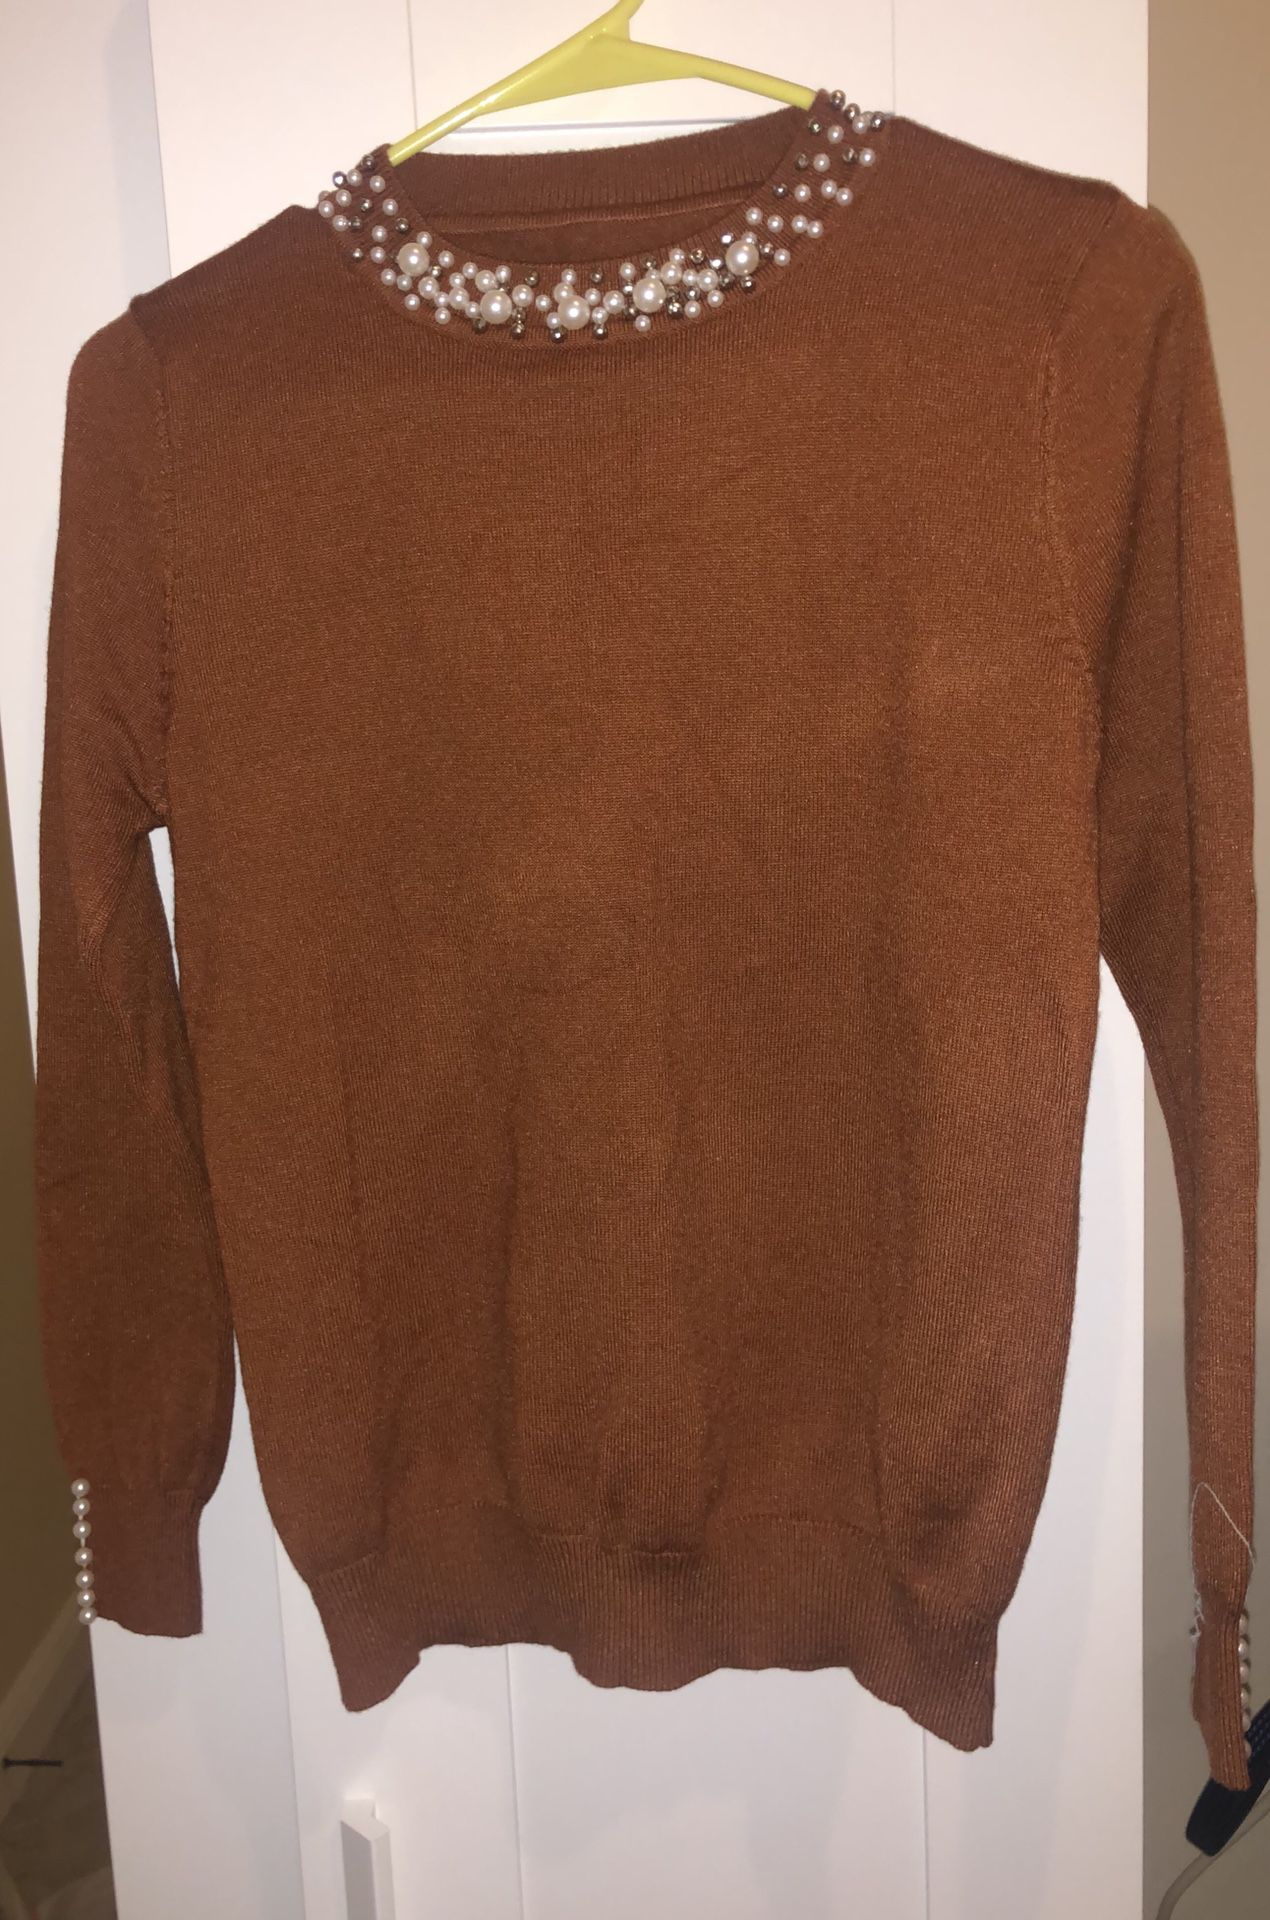 Gorgeous sweater with pearls NEW ! Size S-M